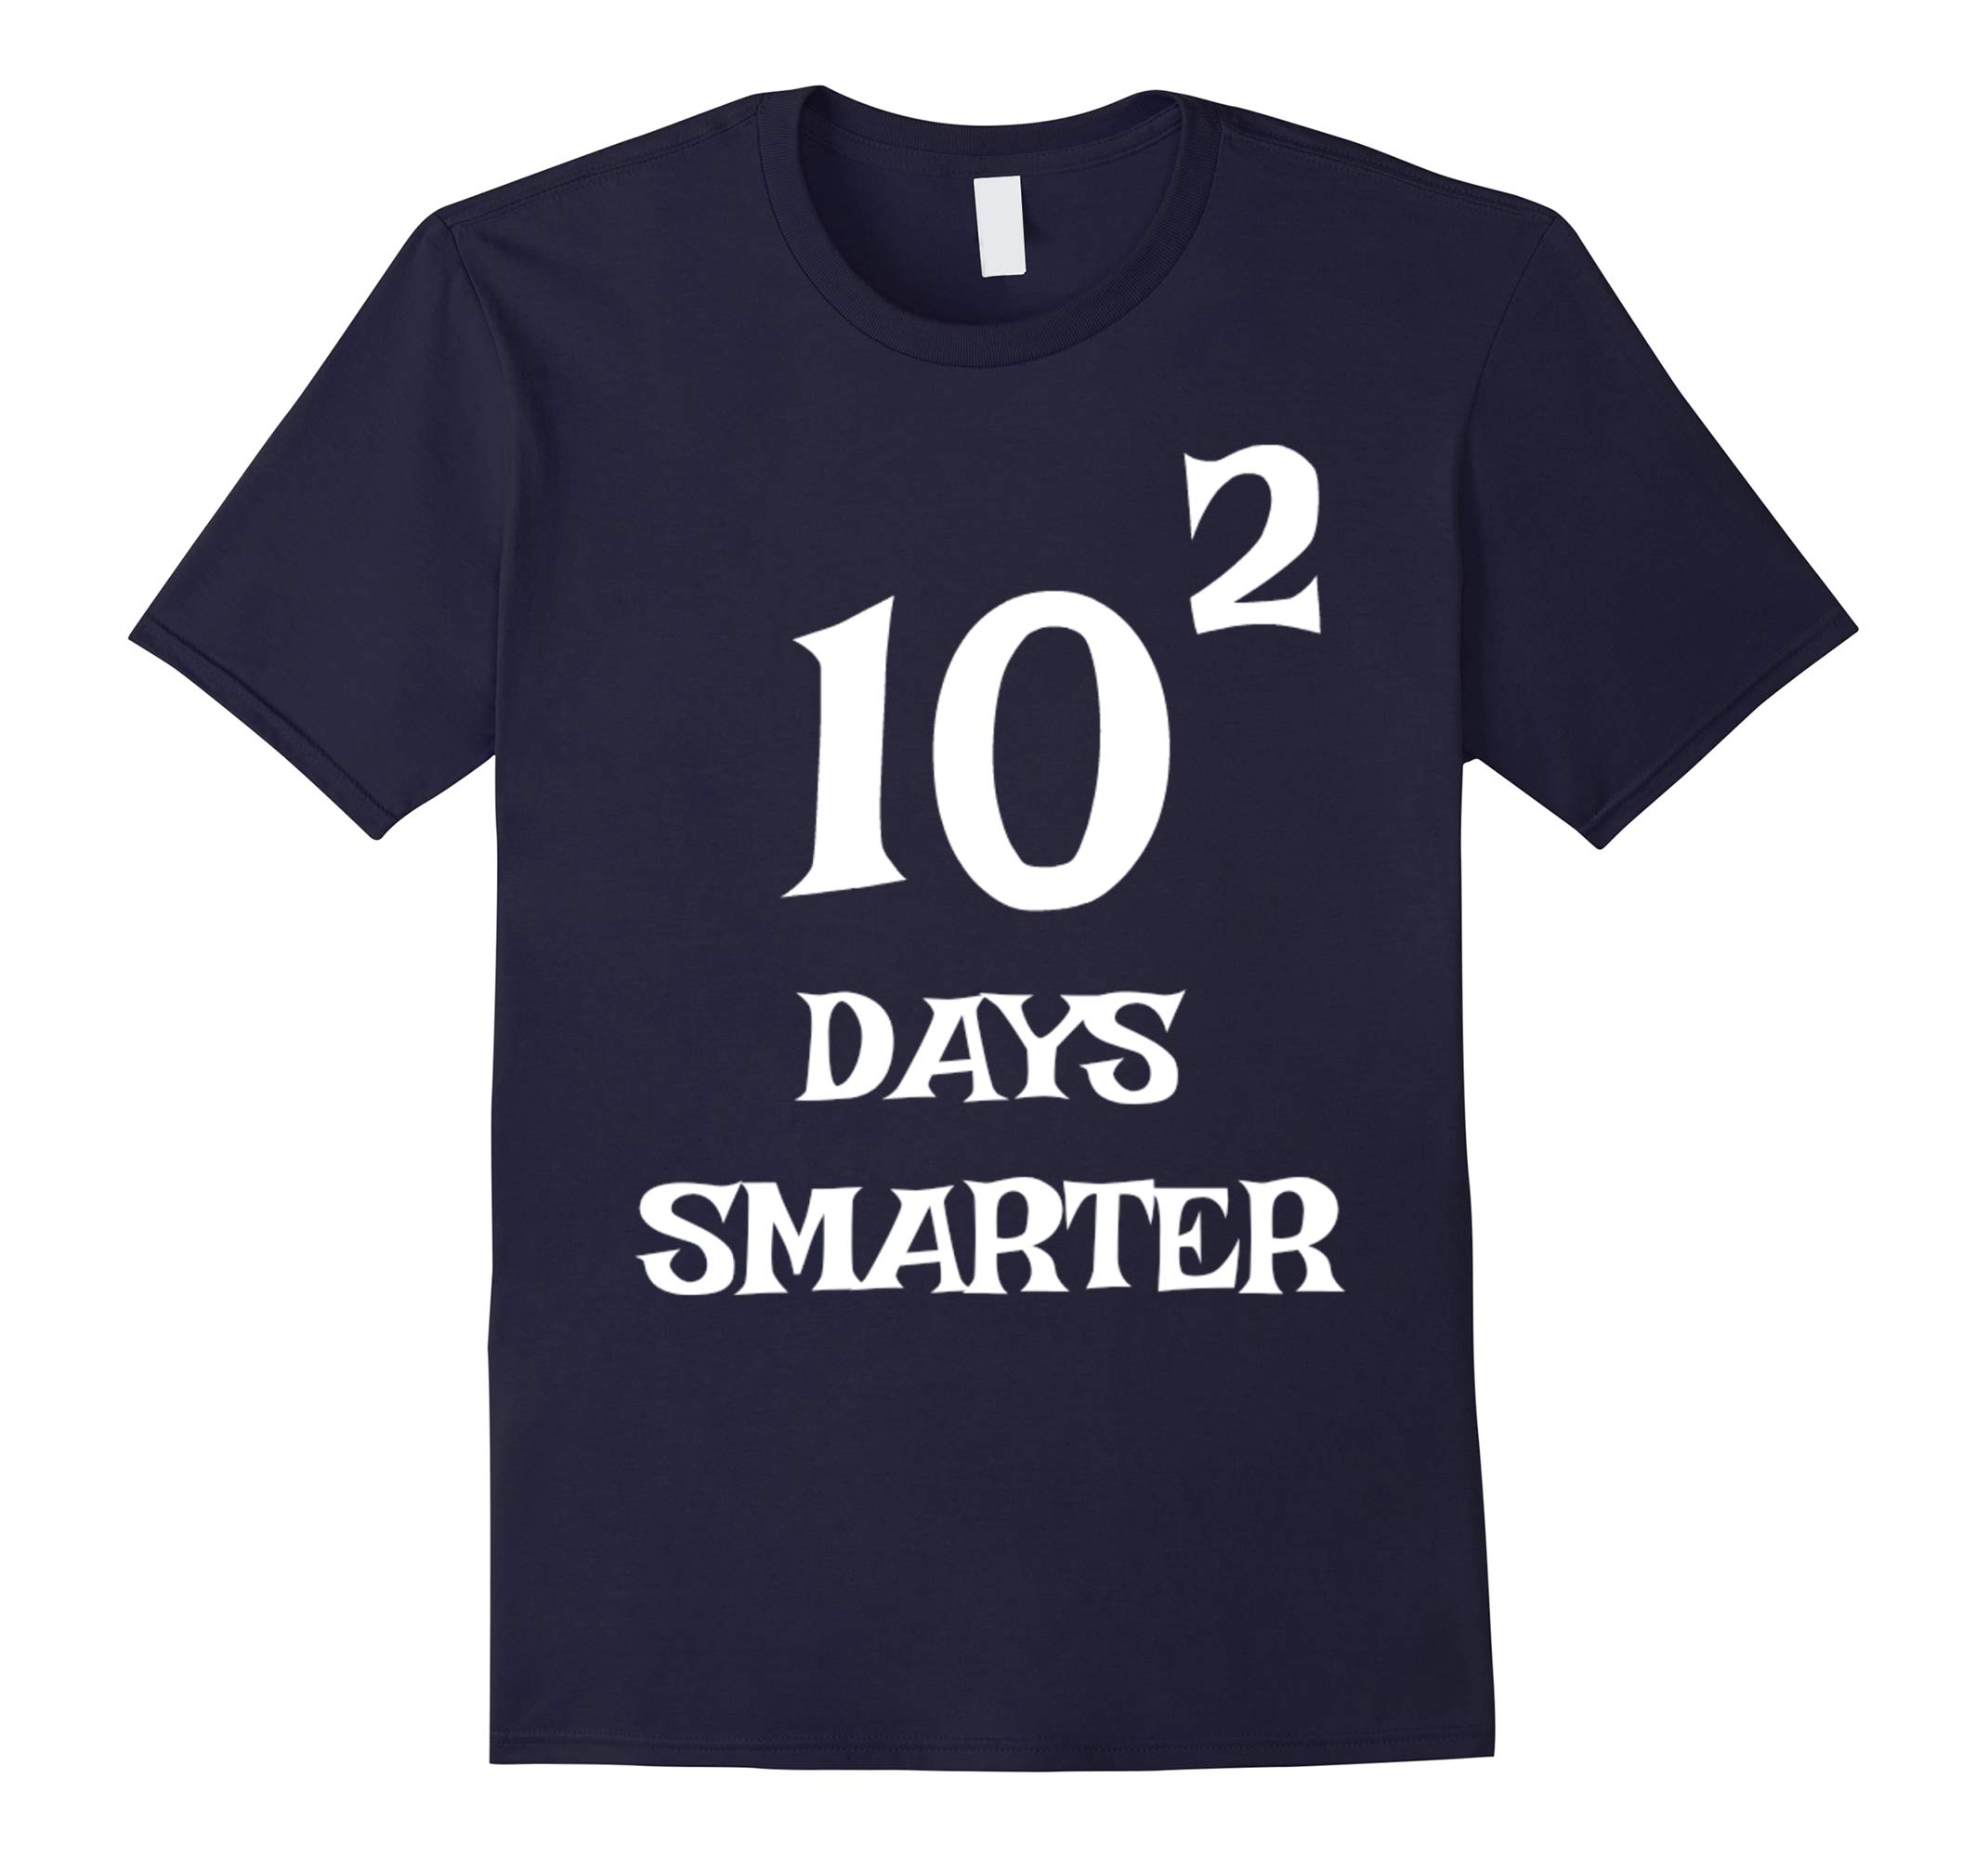 10 Squared Is 100 Days Smarter T-shirt Funny Math 100th Day-RT